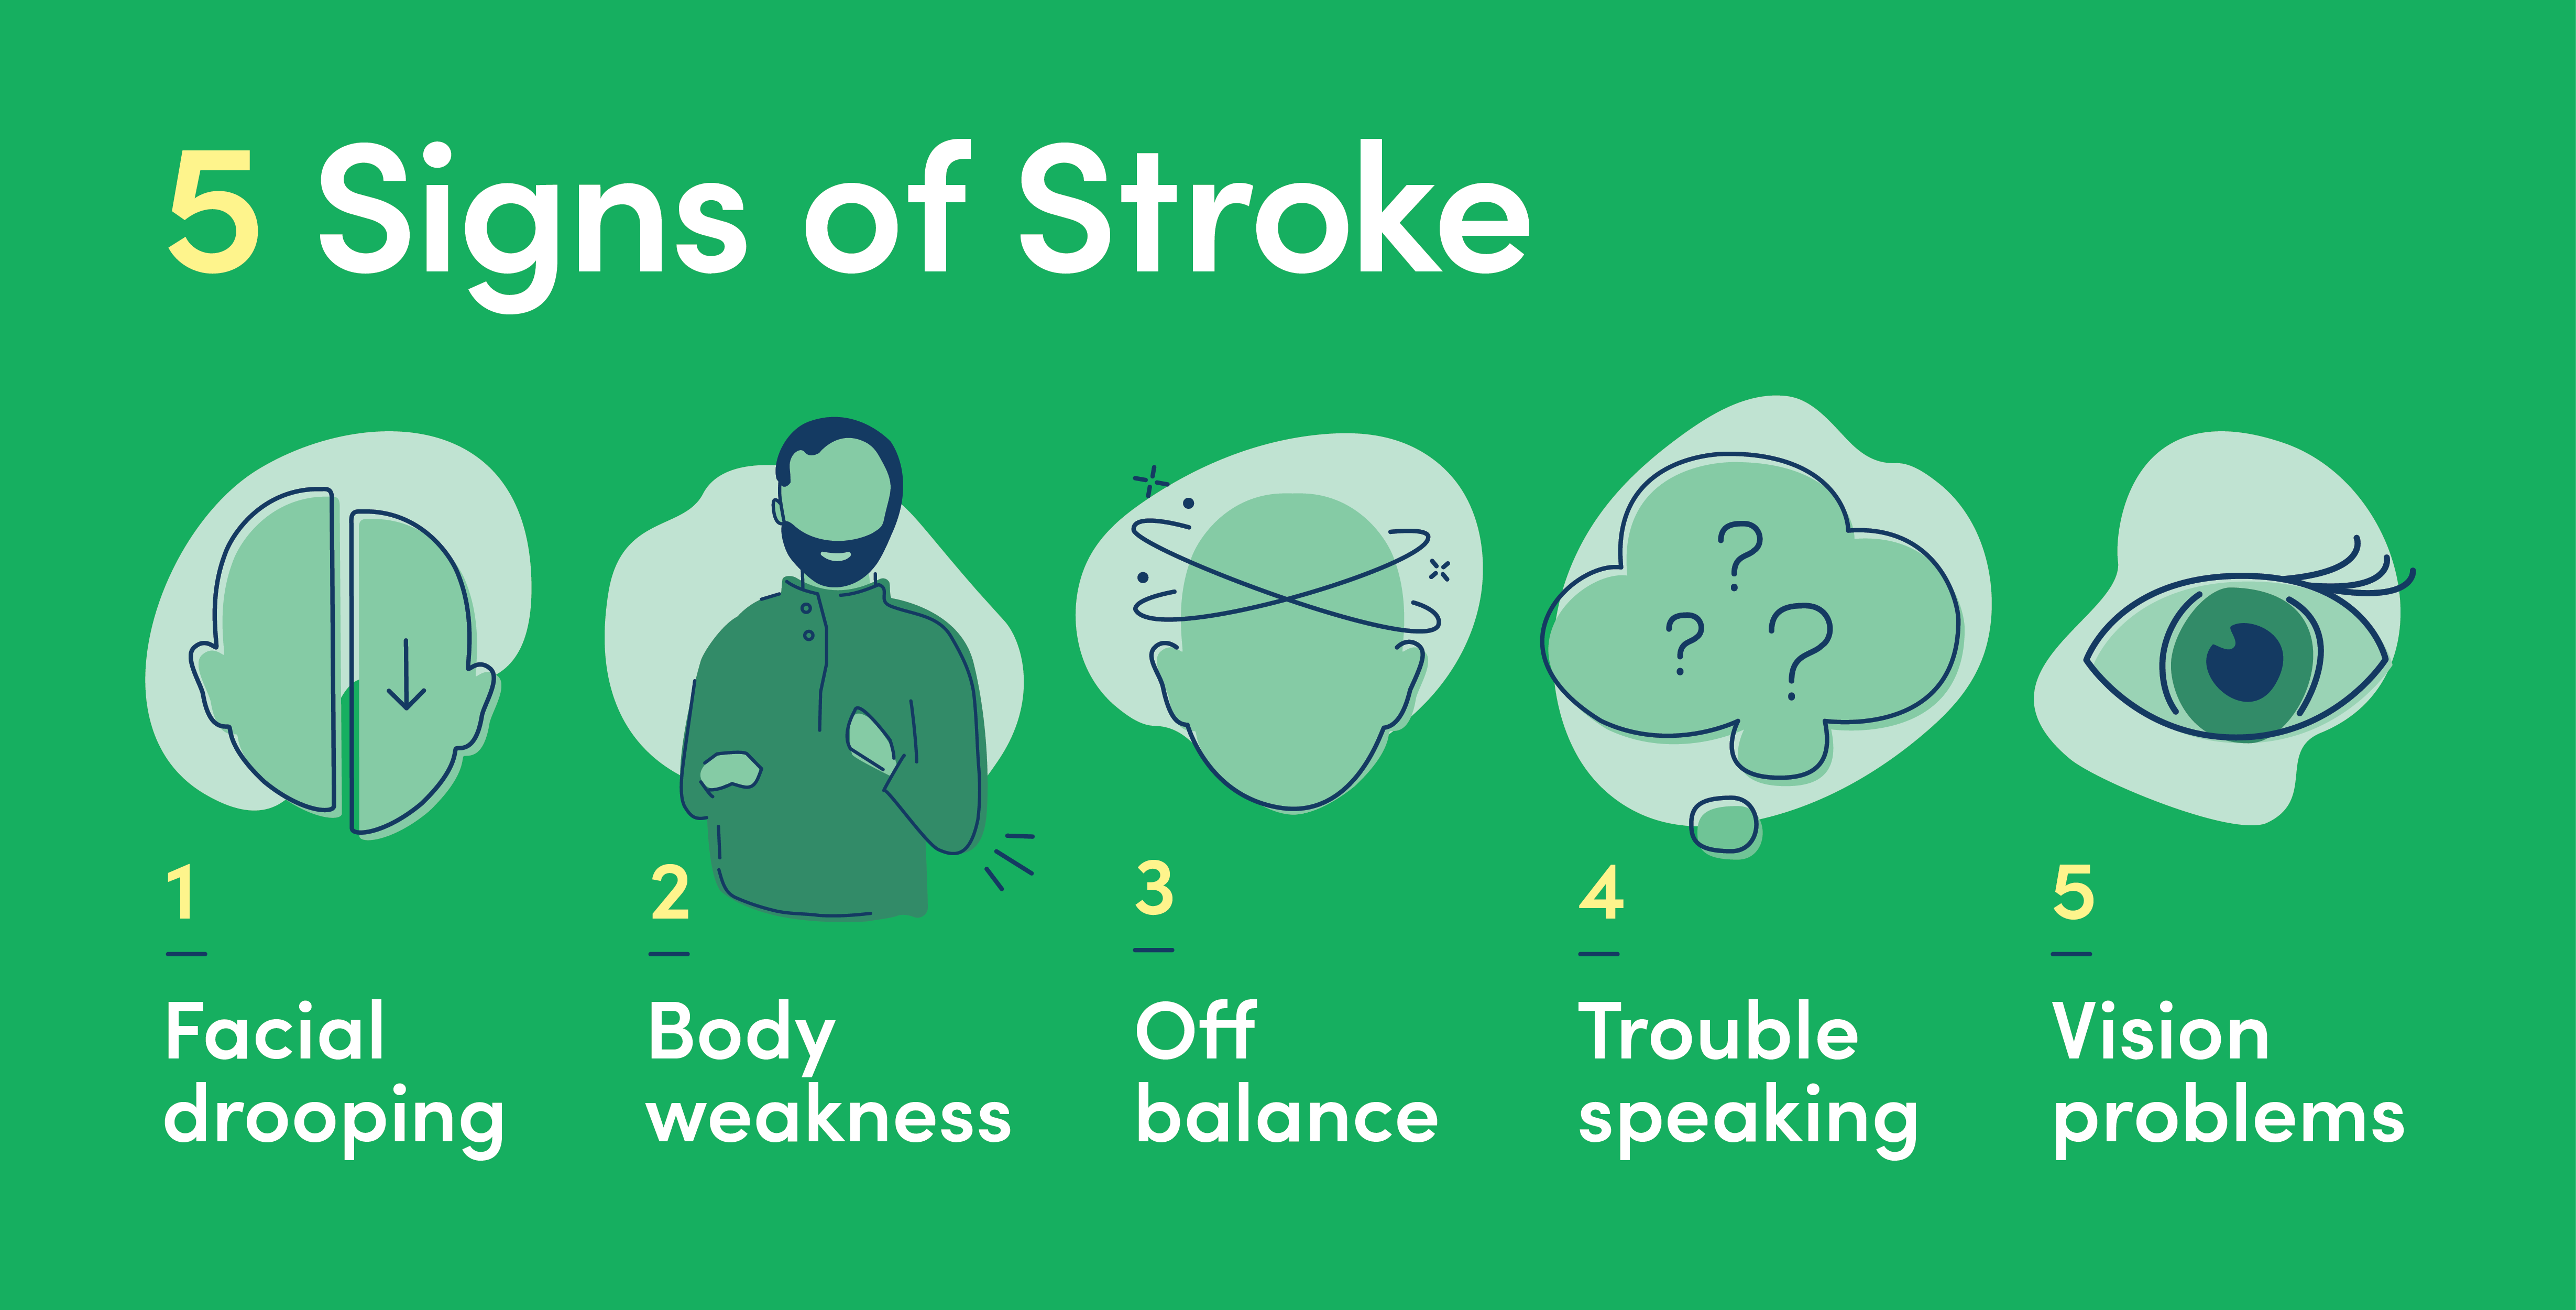 the five signs of a stroke include facial drooping, body weakness, off balance, trouble speaking, and vision problems